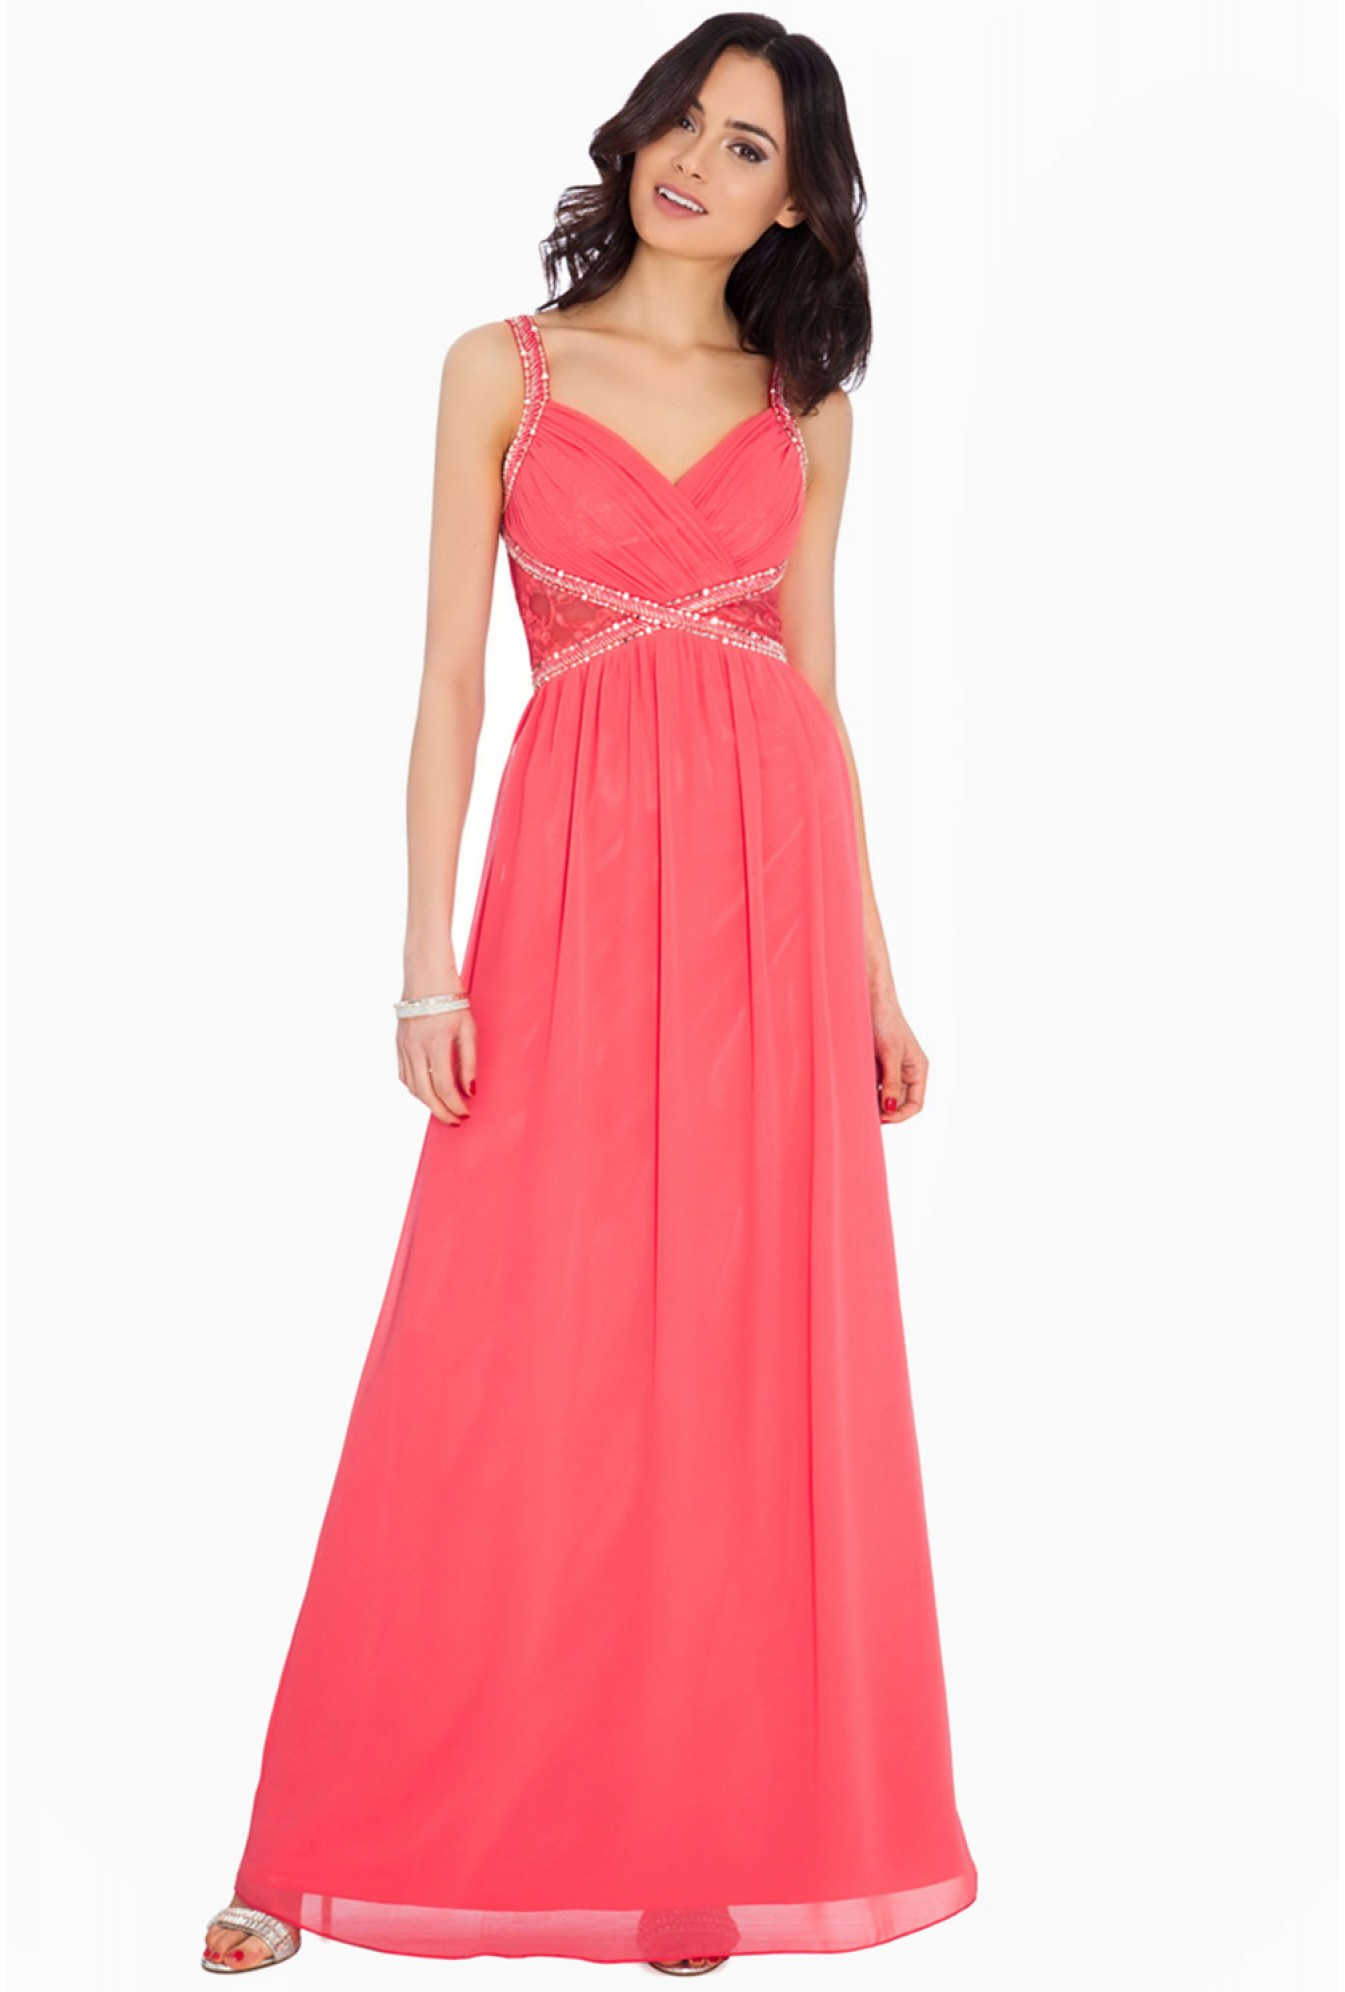 c0ec1db146 More Views. Elaine Embellished Chiffon Maxi Dress in Coral